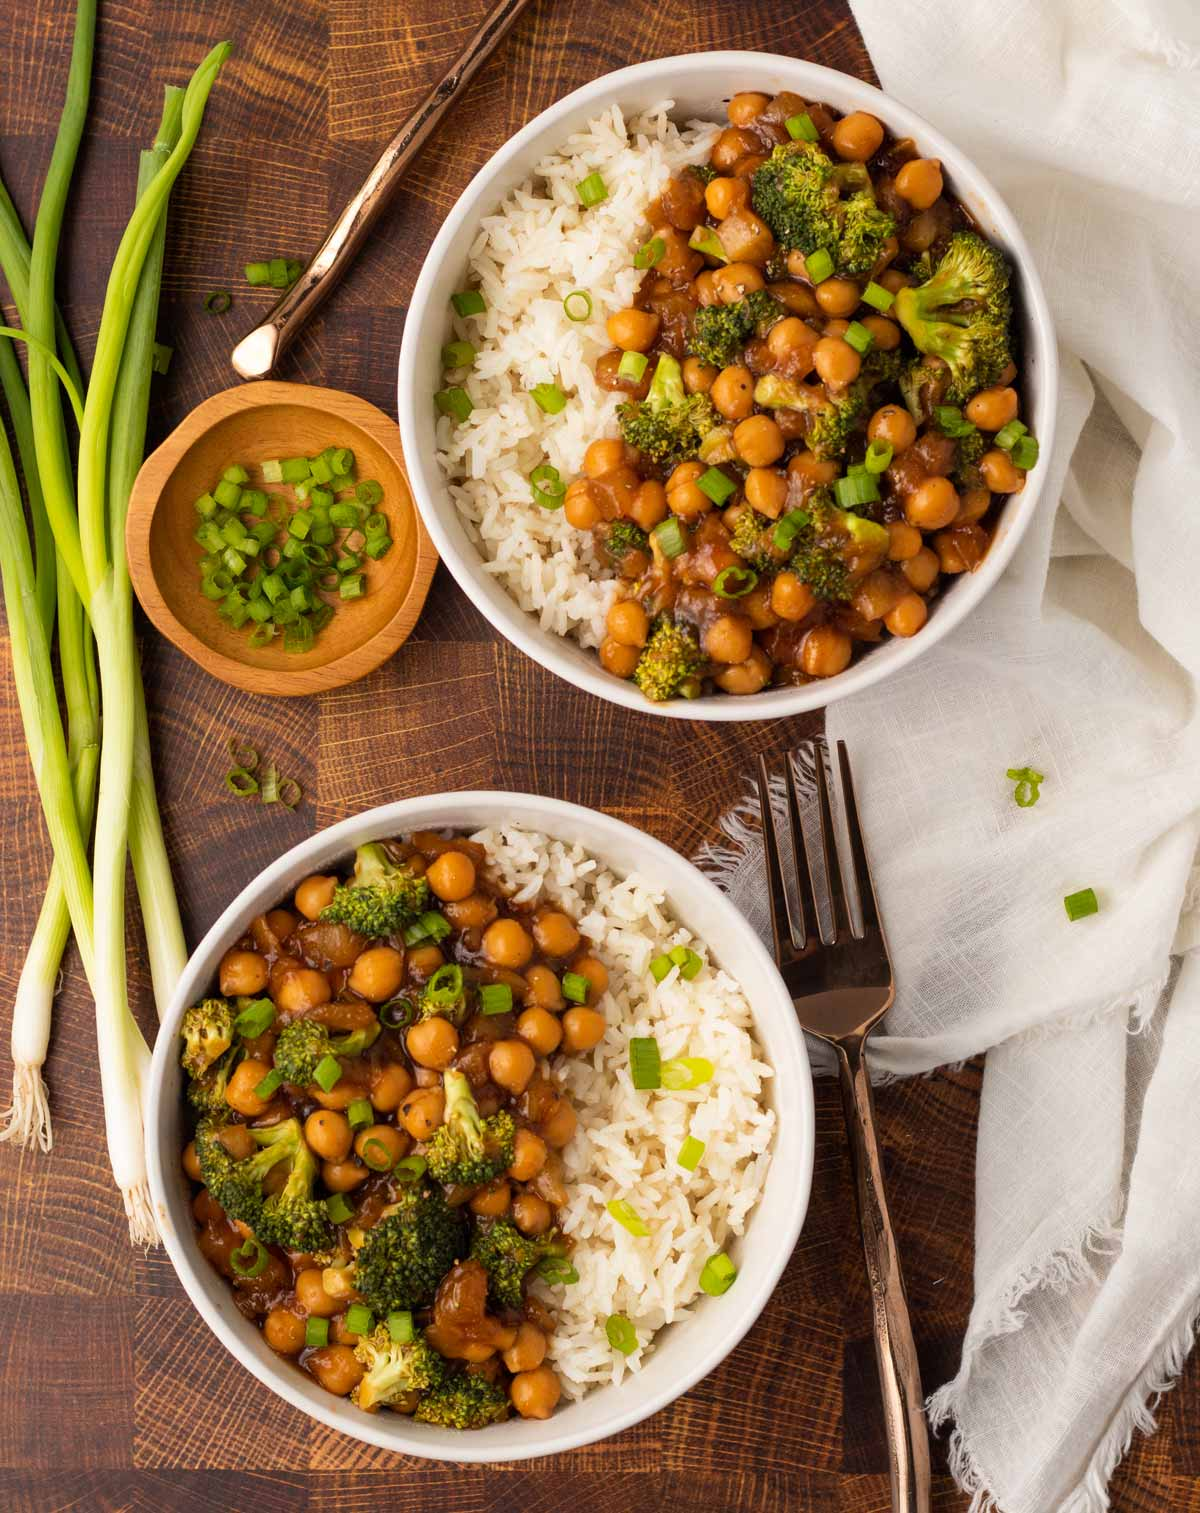 Two bowls of vegan chickpea teriyaki topped with green onions.